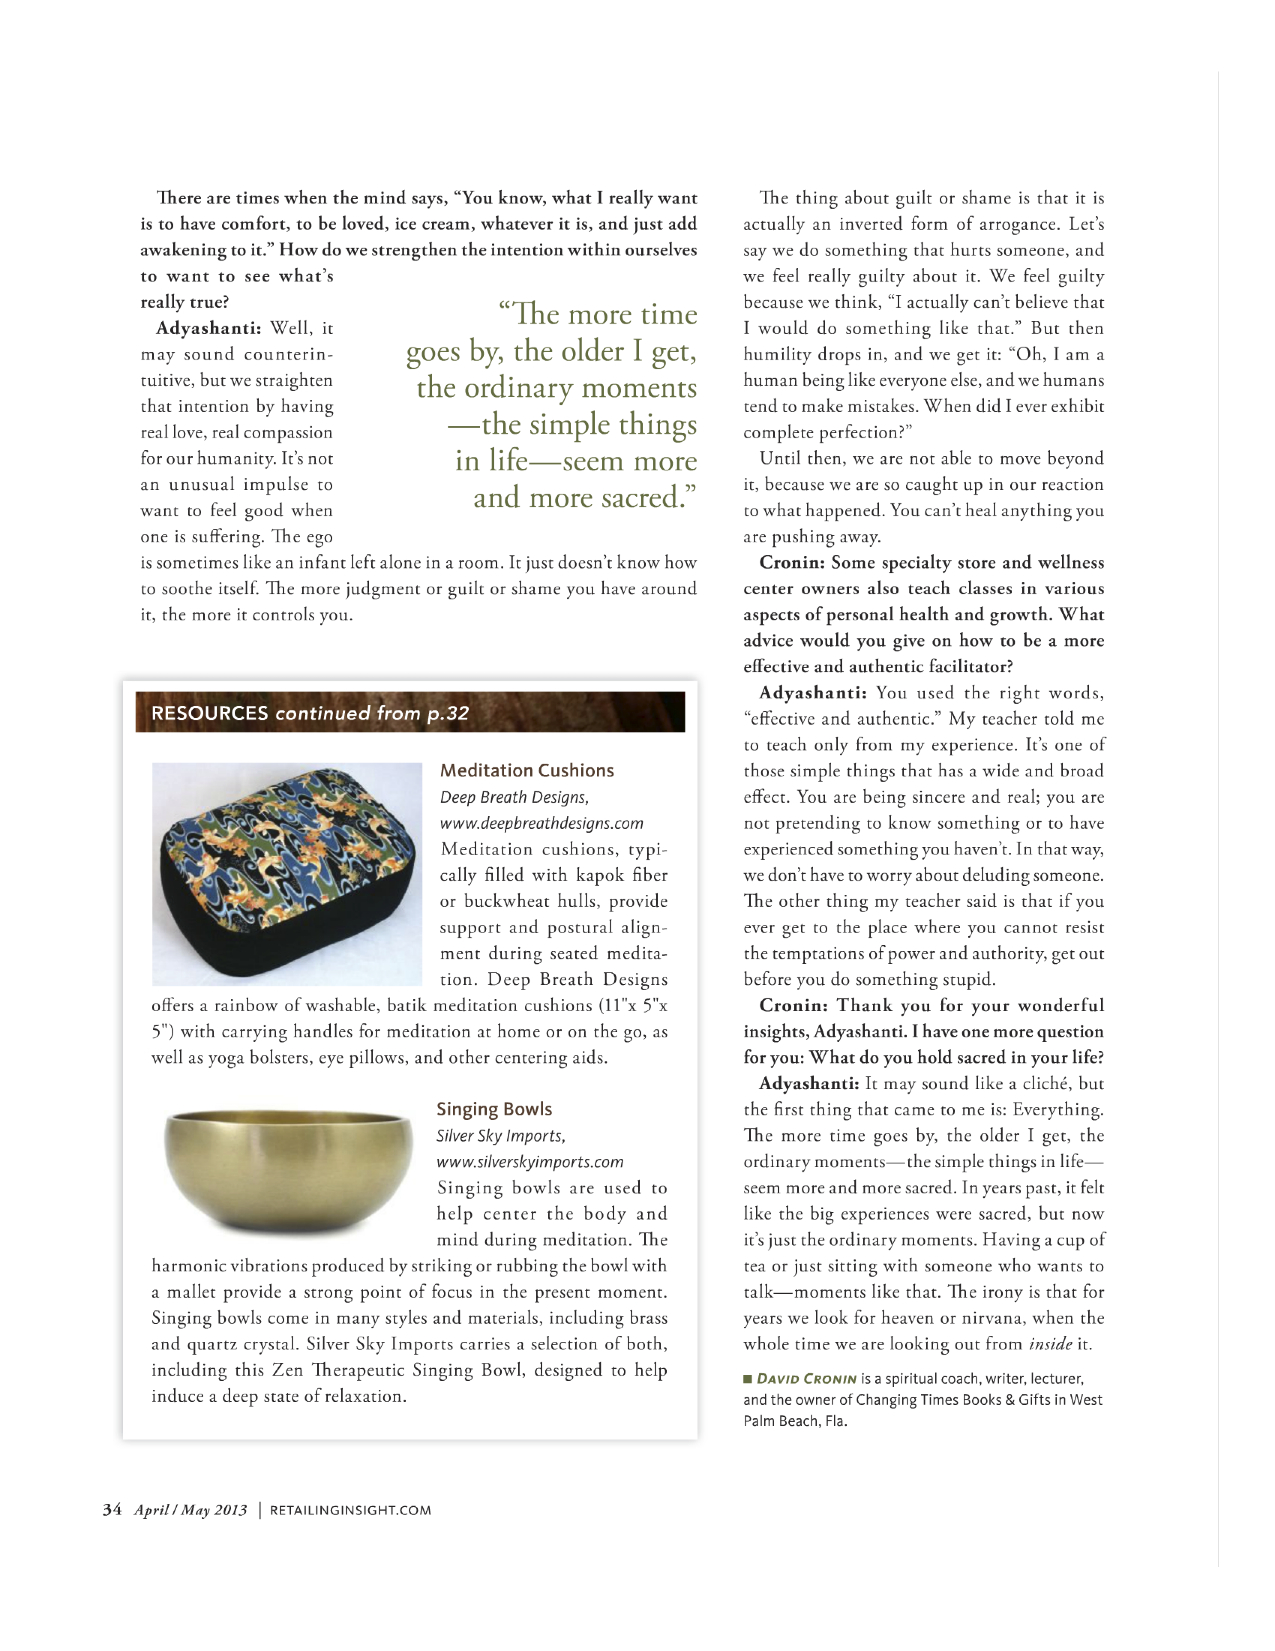 retailing-insight-article-silver-sky-imports.jpg